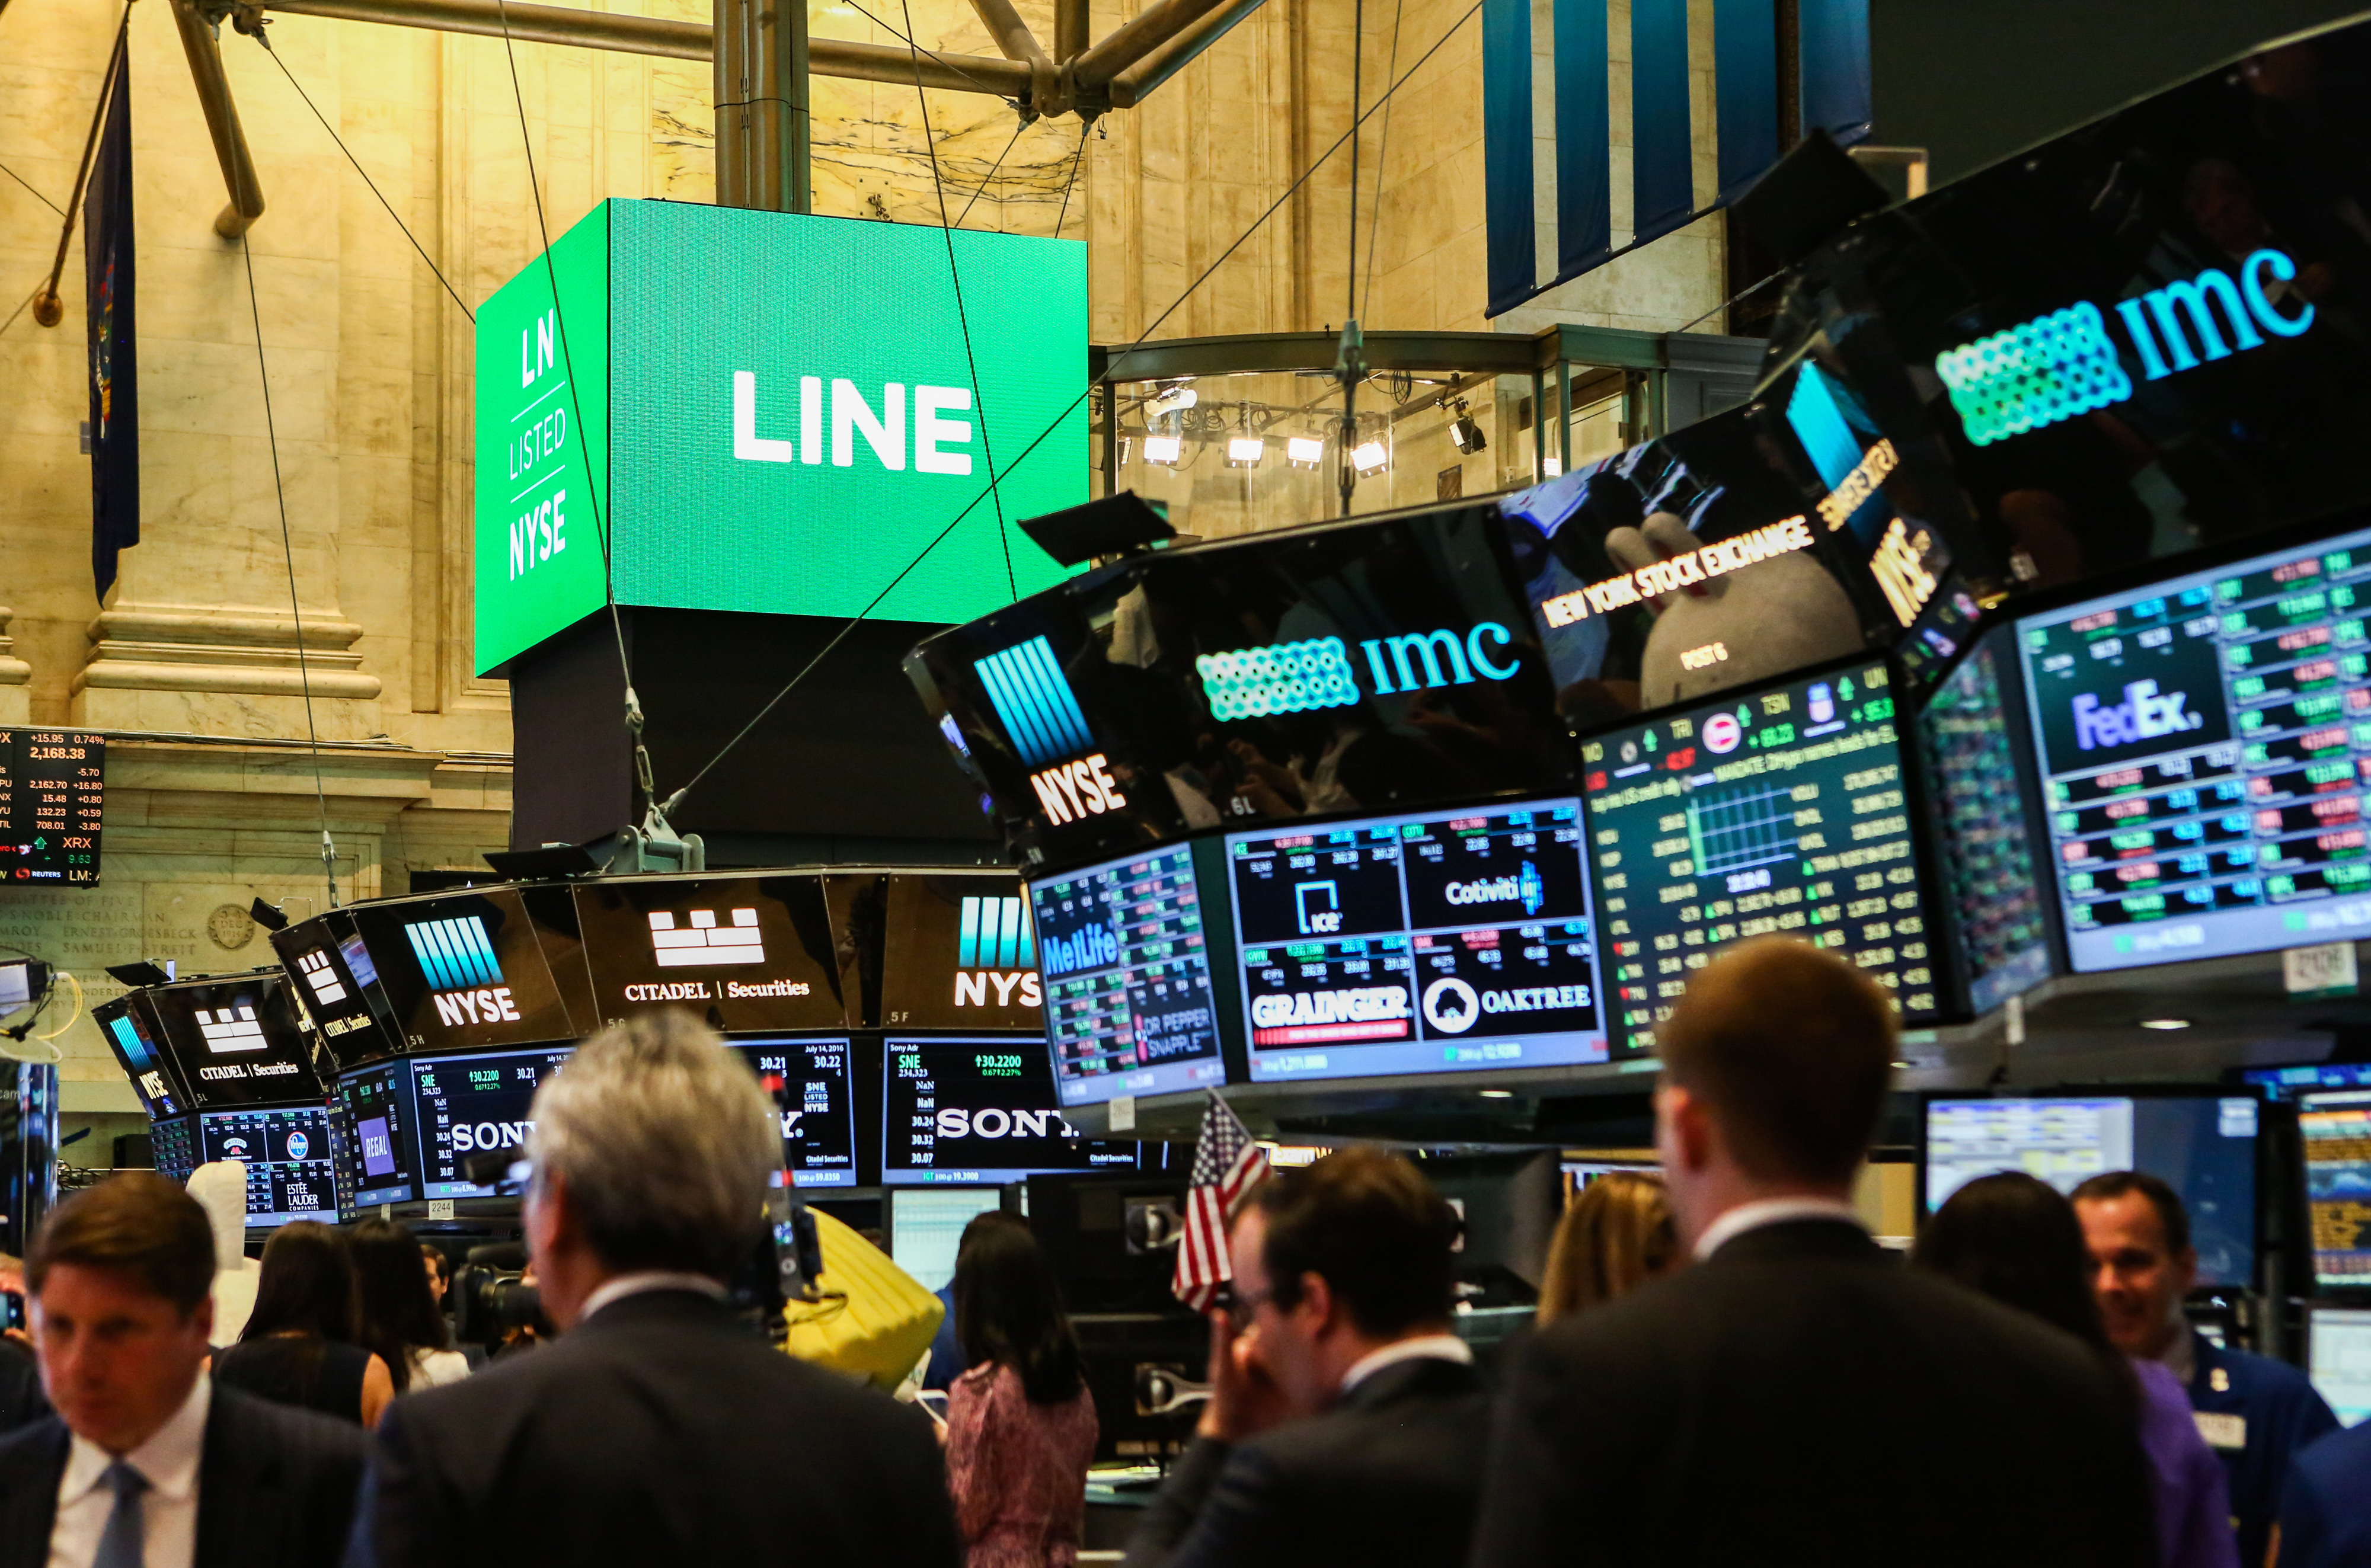 Trading On The Floor Of The NYSE As Line Corp. Debuts IPO